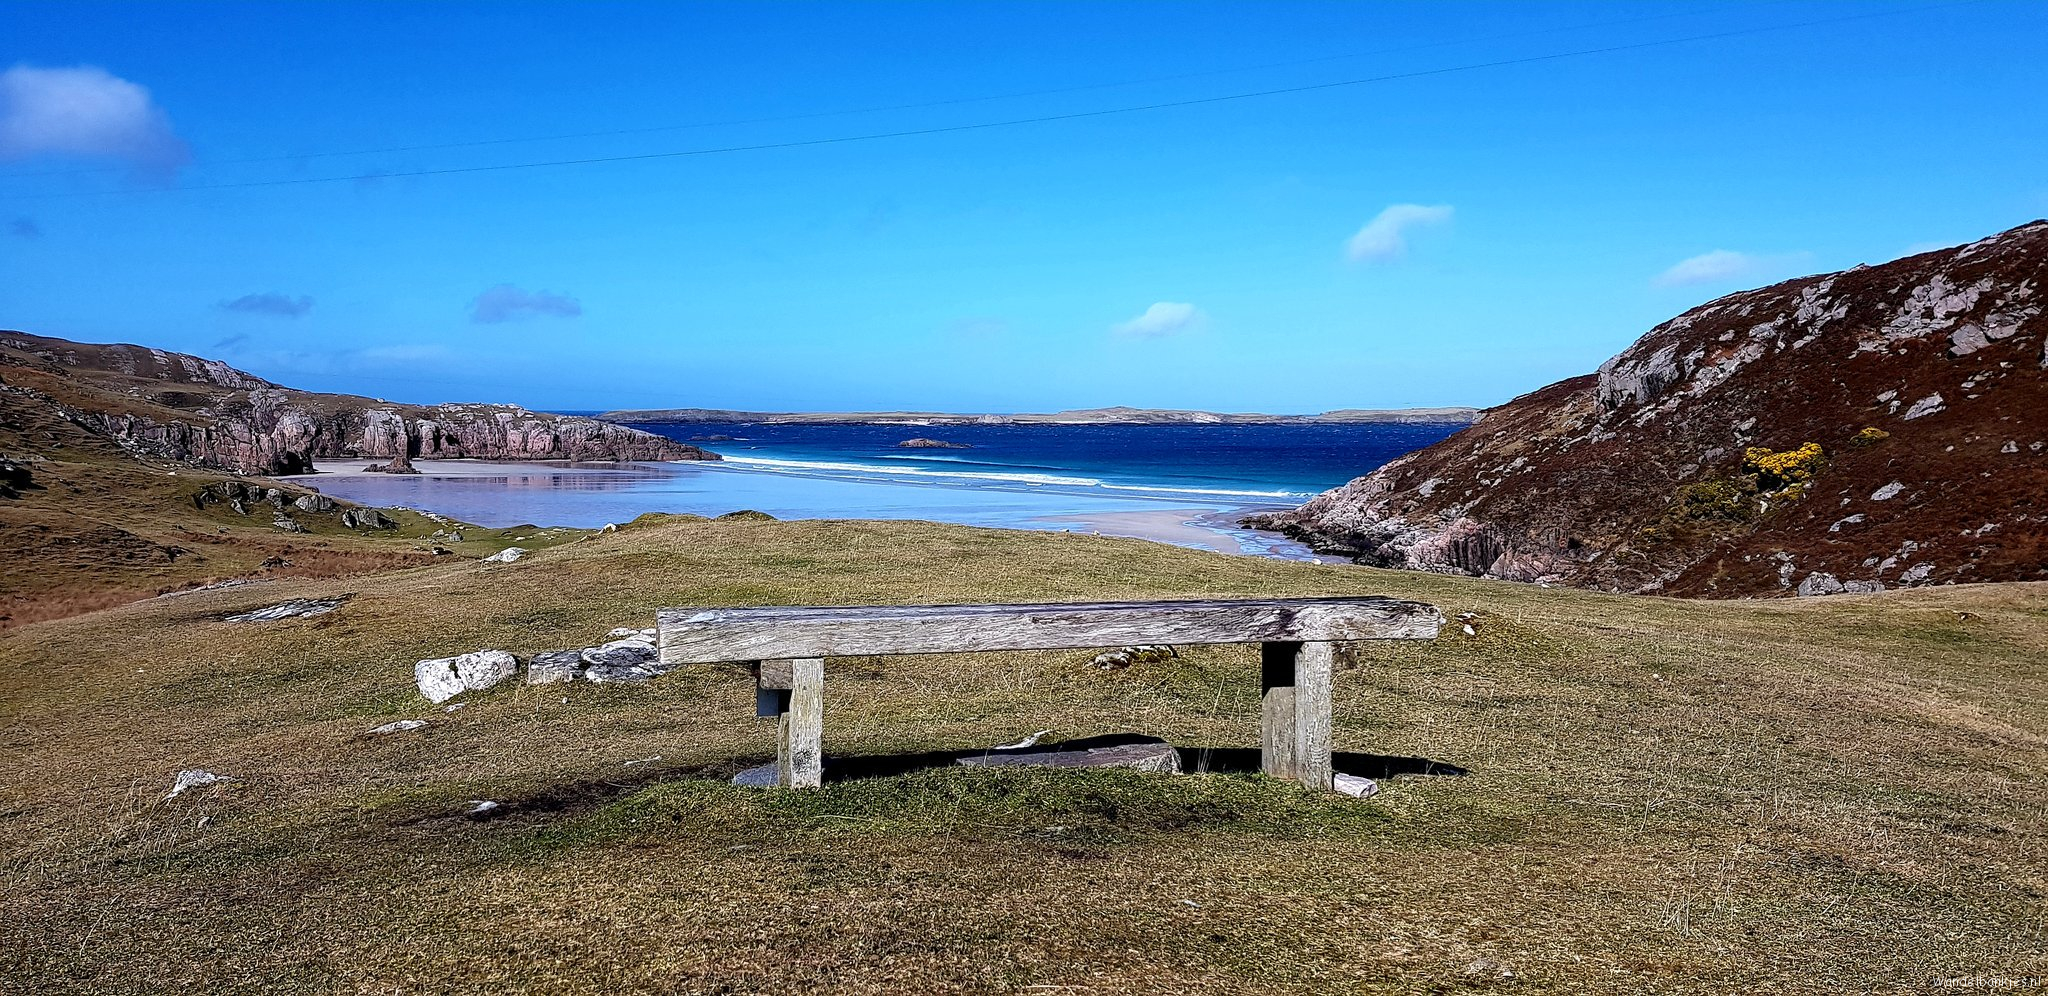 rt-hansterheijne-what-a-fantastic-view-durness-scotlandwalkers-walkersbenches-myfavebench-https-t-co-6ntdut9mkb